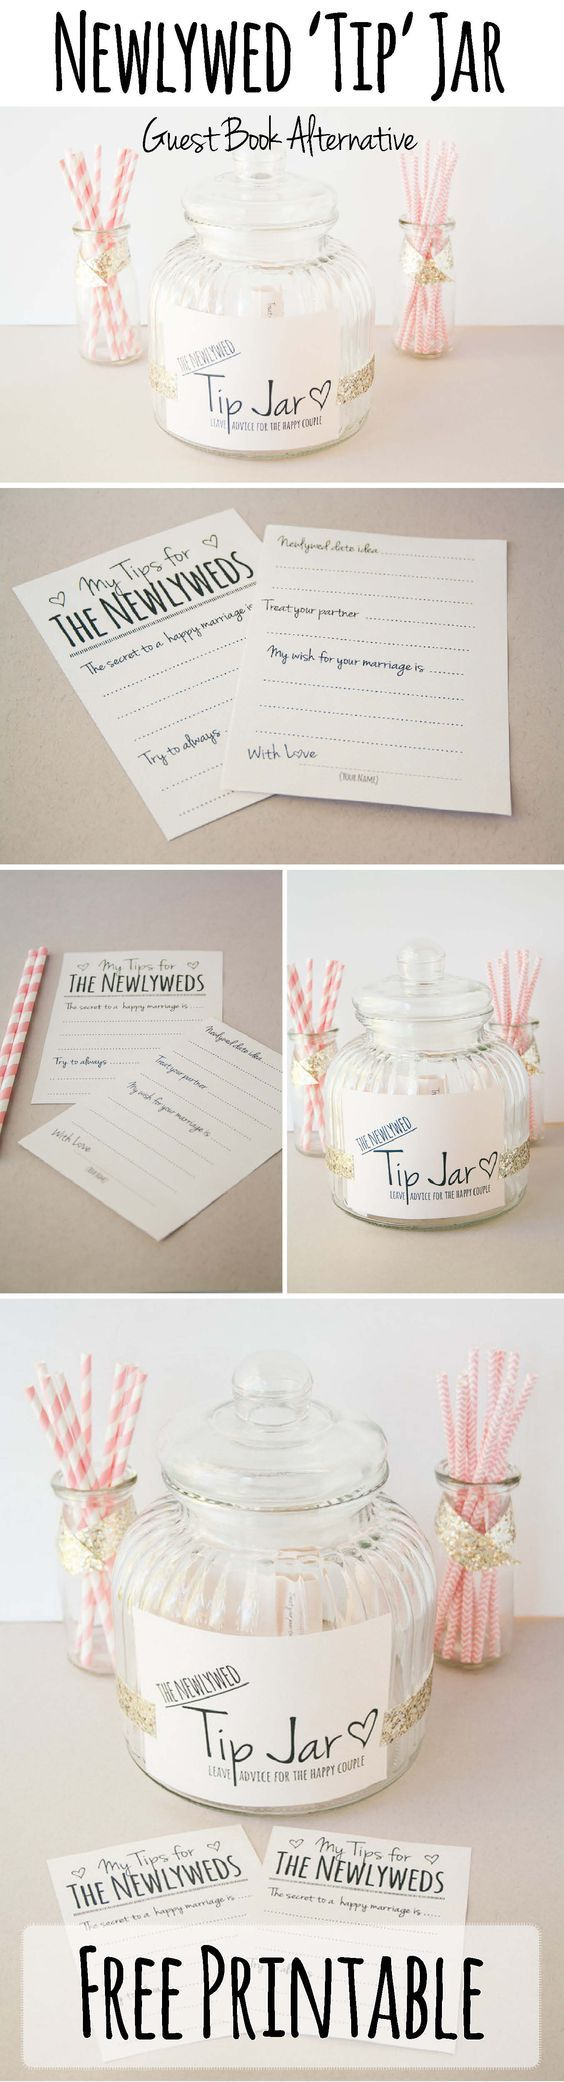 Newly Wed Tip Jar http://www.confettidaydreams.com/newlywed-tip-jar/ Here's how to make this cute Tip Jar for your wedding as an adorable guest book alternative!: